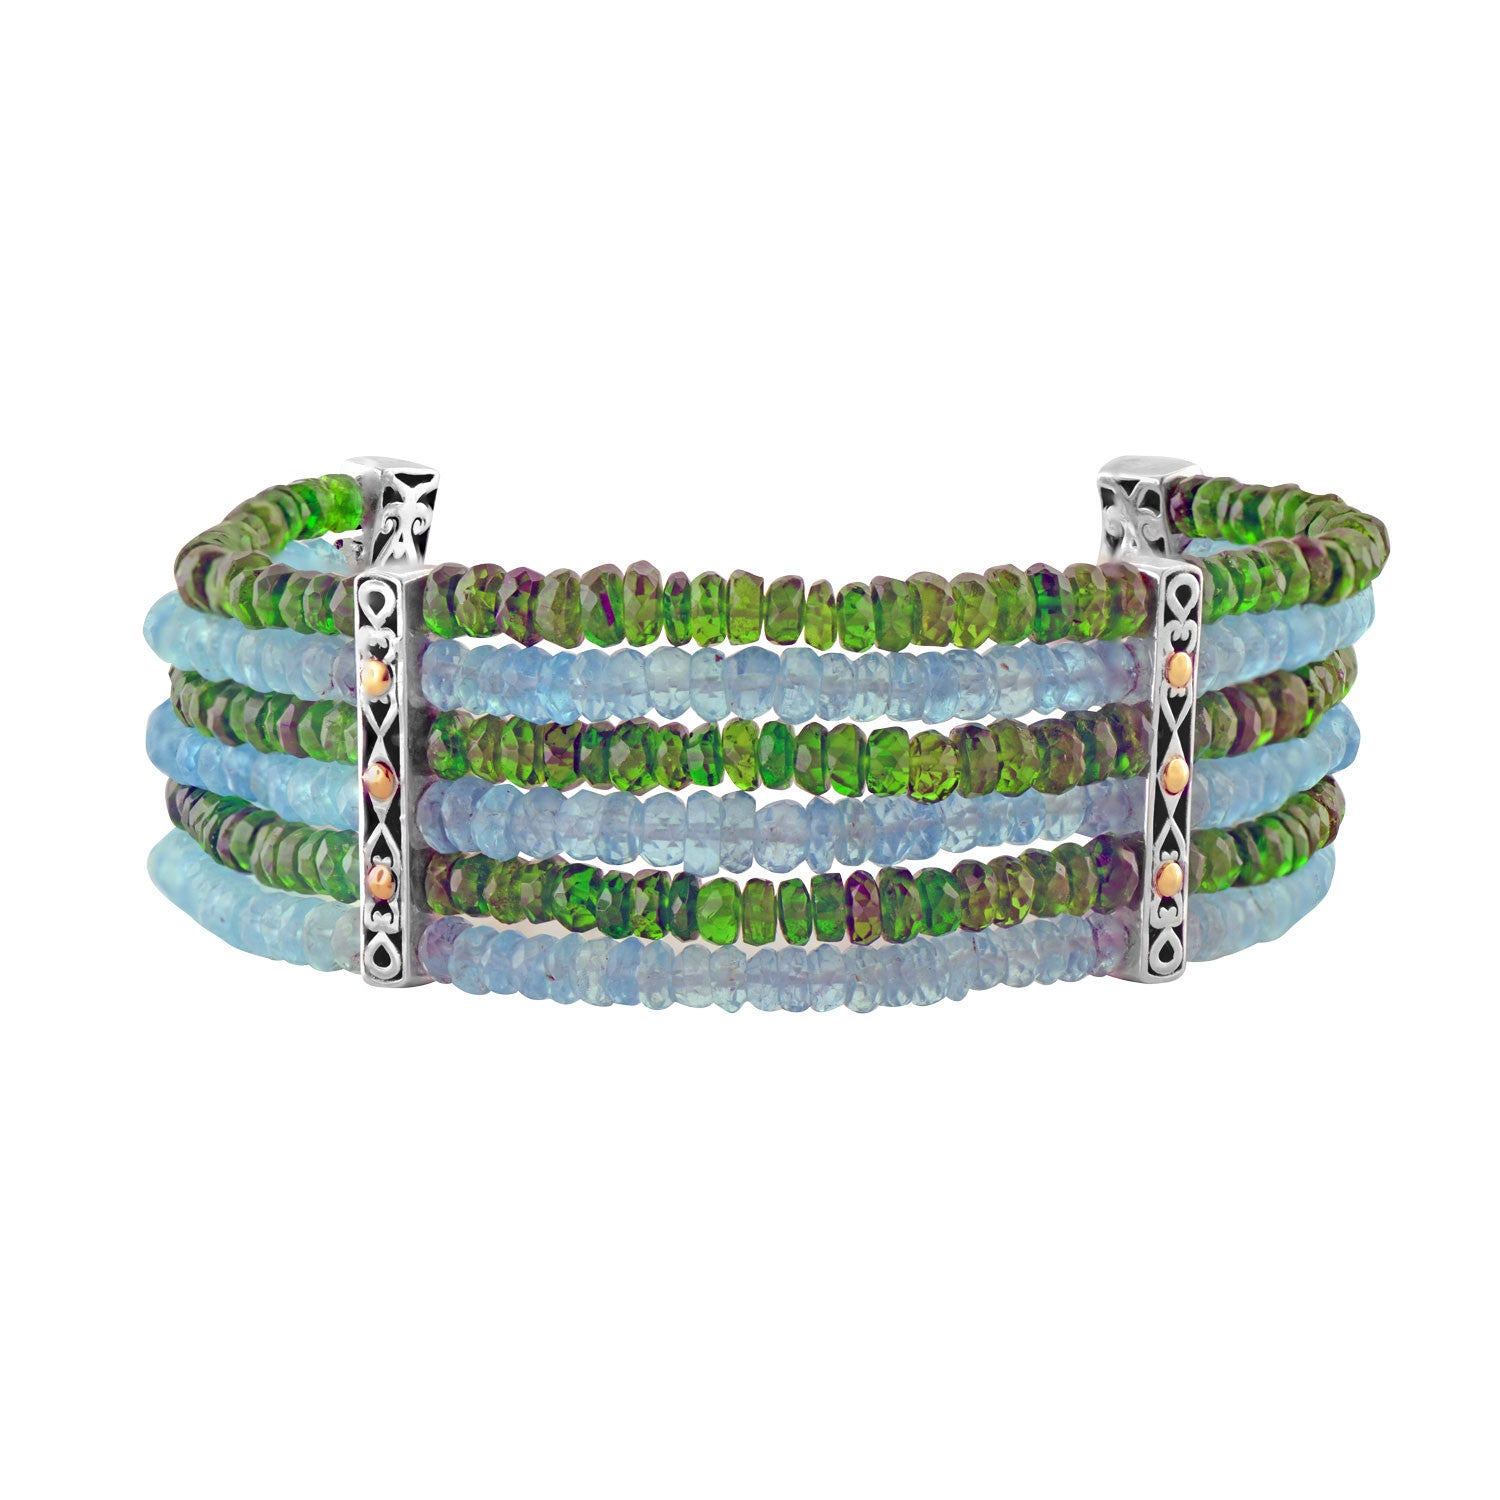 Six Strand Beaded Bracelet Chrome Diopside and Neon Apatite Silver Gold